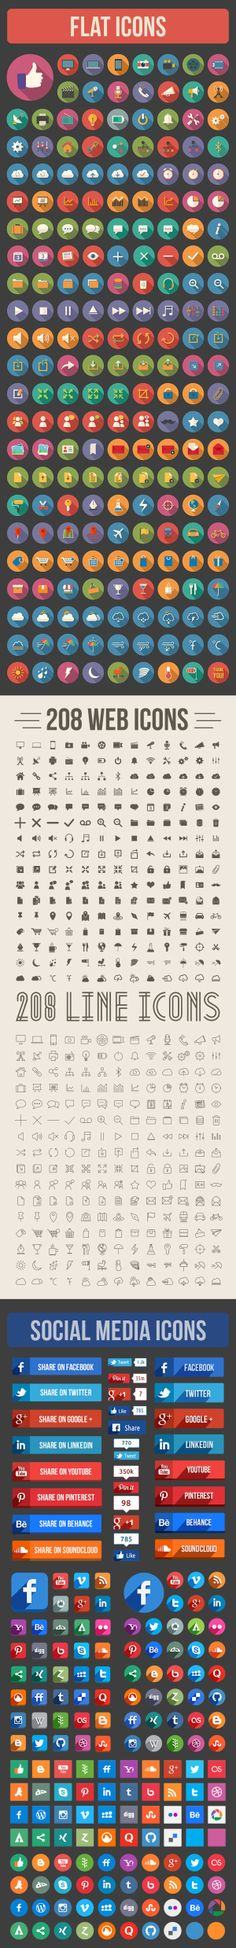 An interesting, simple icon family from https://www.behance.net/gallery/Icons-pack/10459897